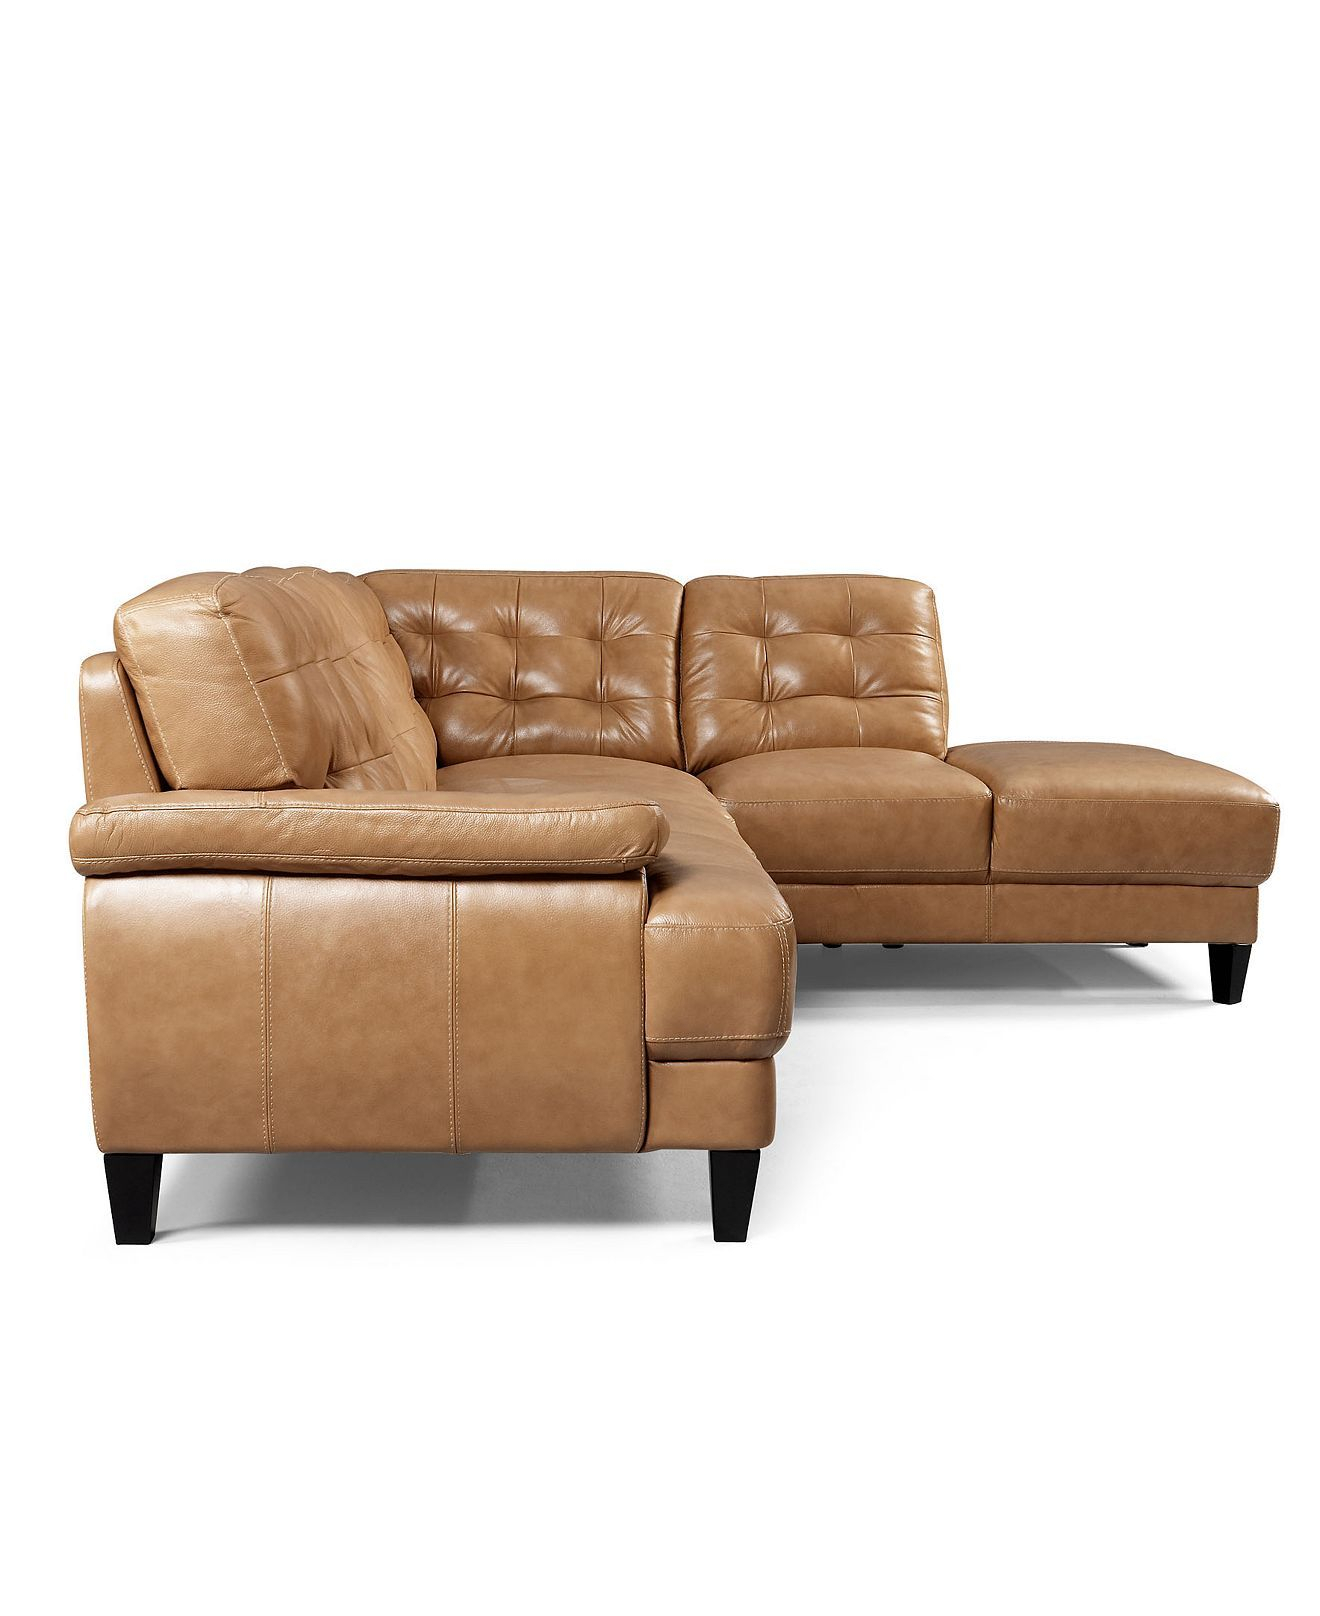 Low Profile Reclining Sofa – Microfiber Power Reclining With Navigator Manual Reclining Sofas (View 5 of 13)